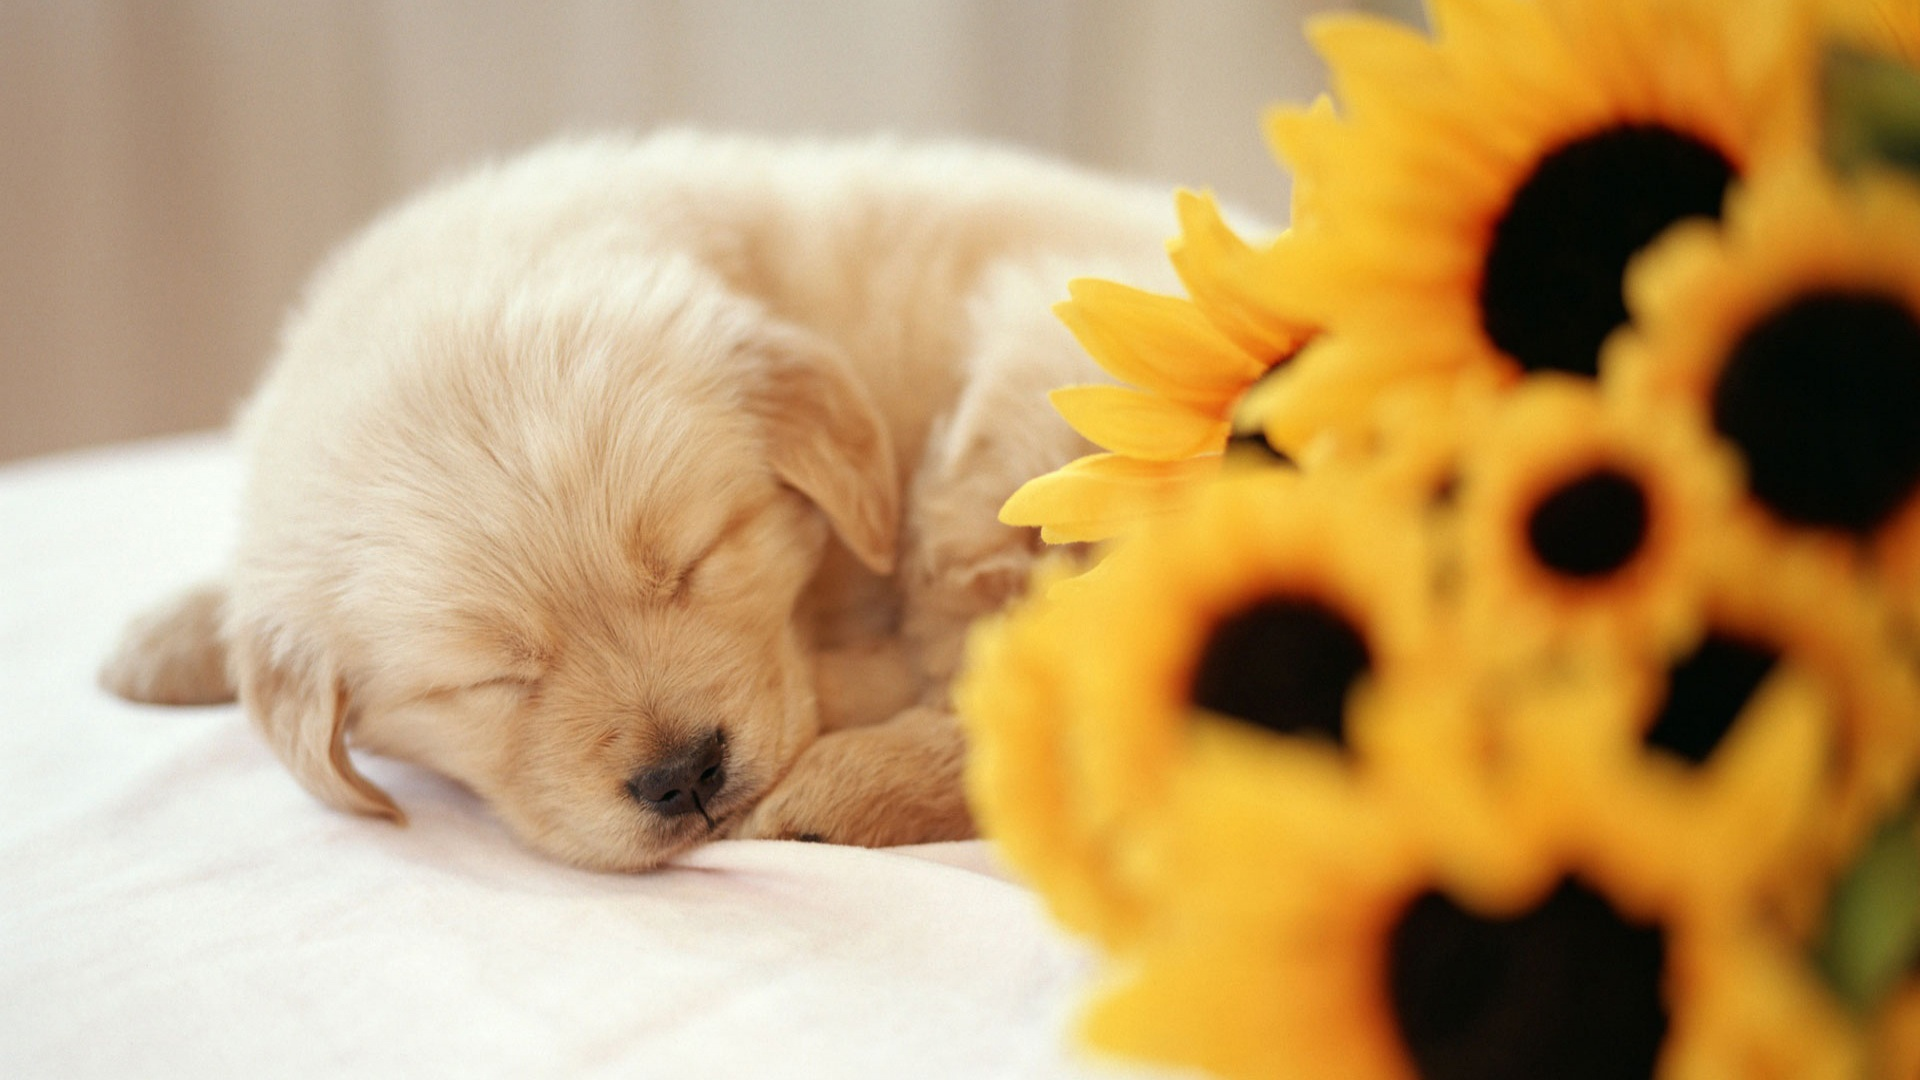 Puppy wallpaper | 1920x1080 | #46576